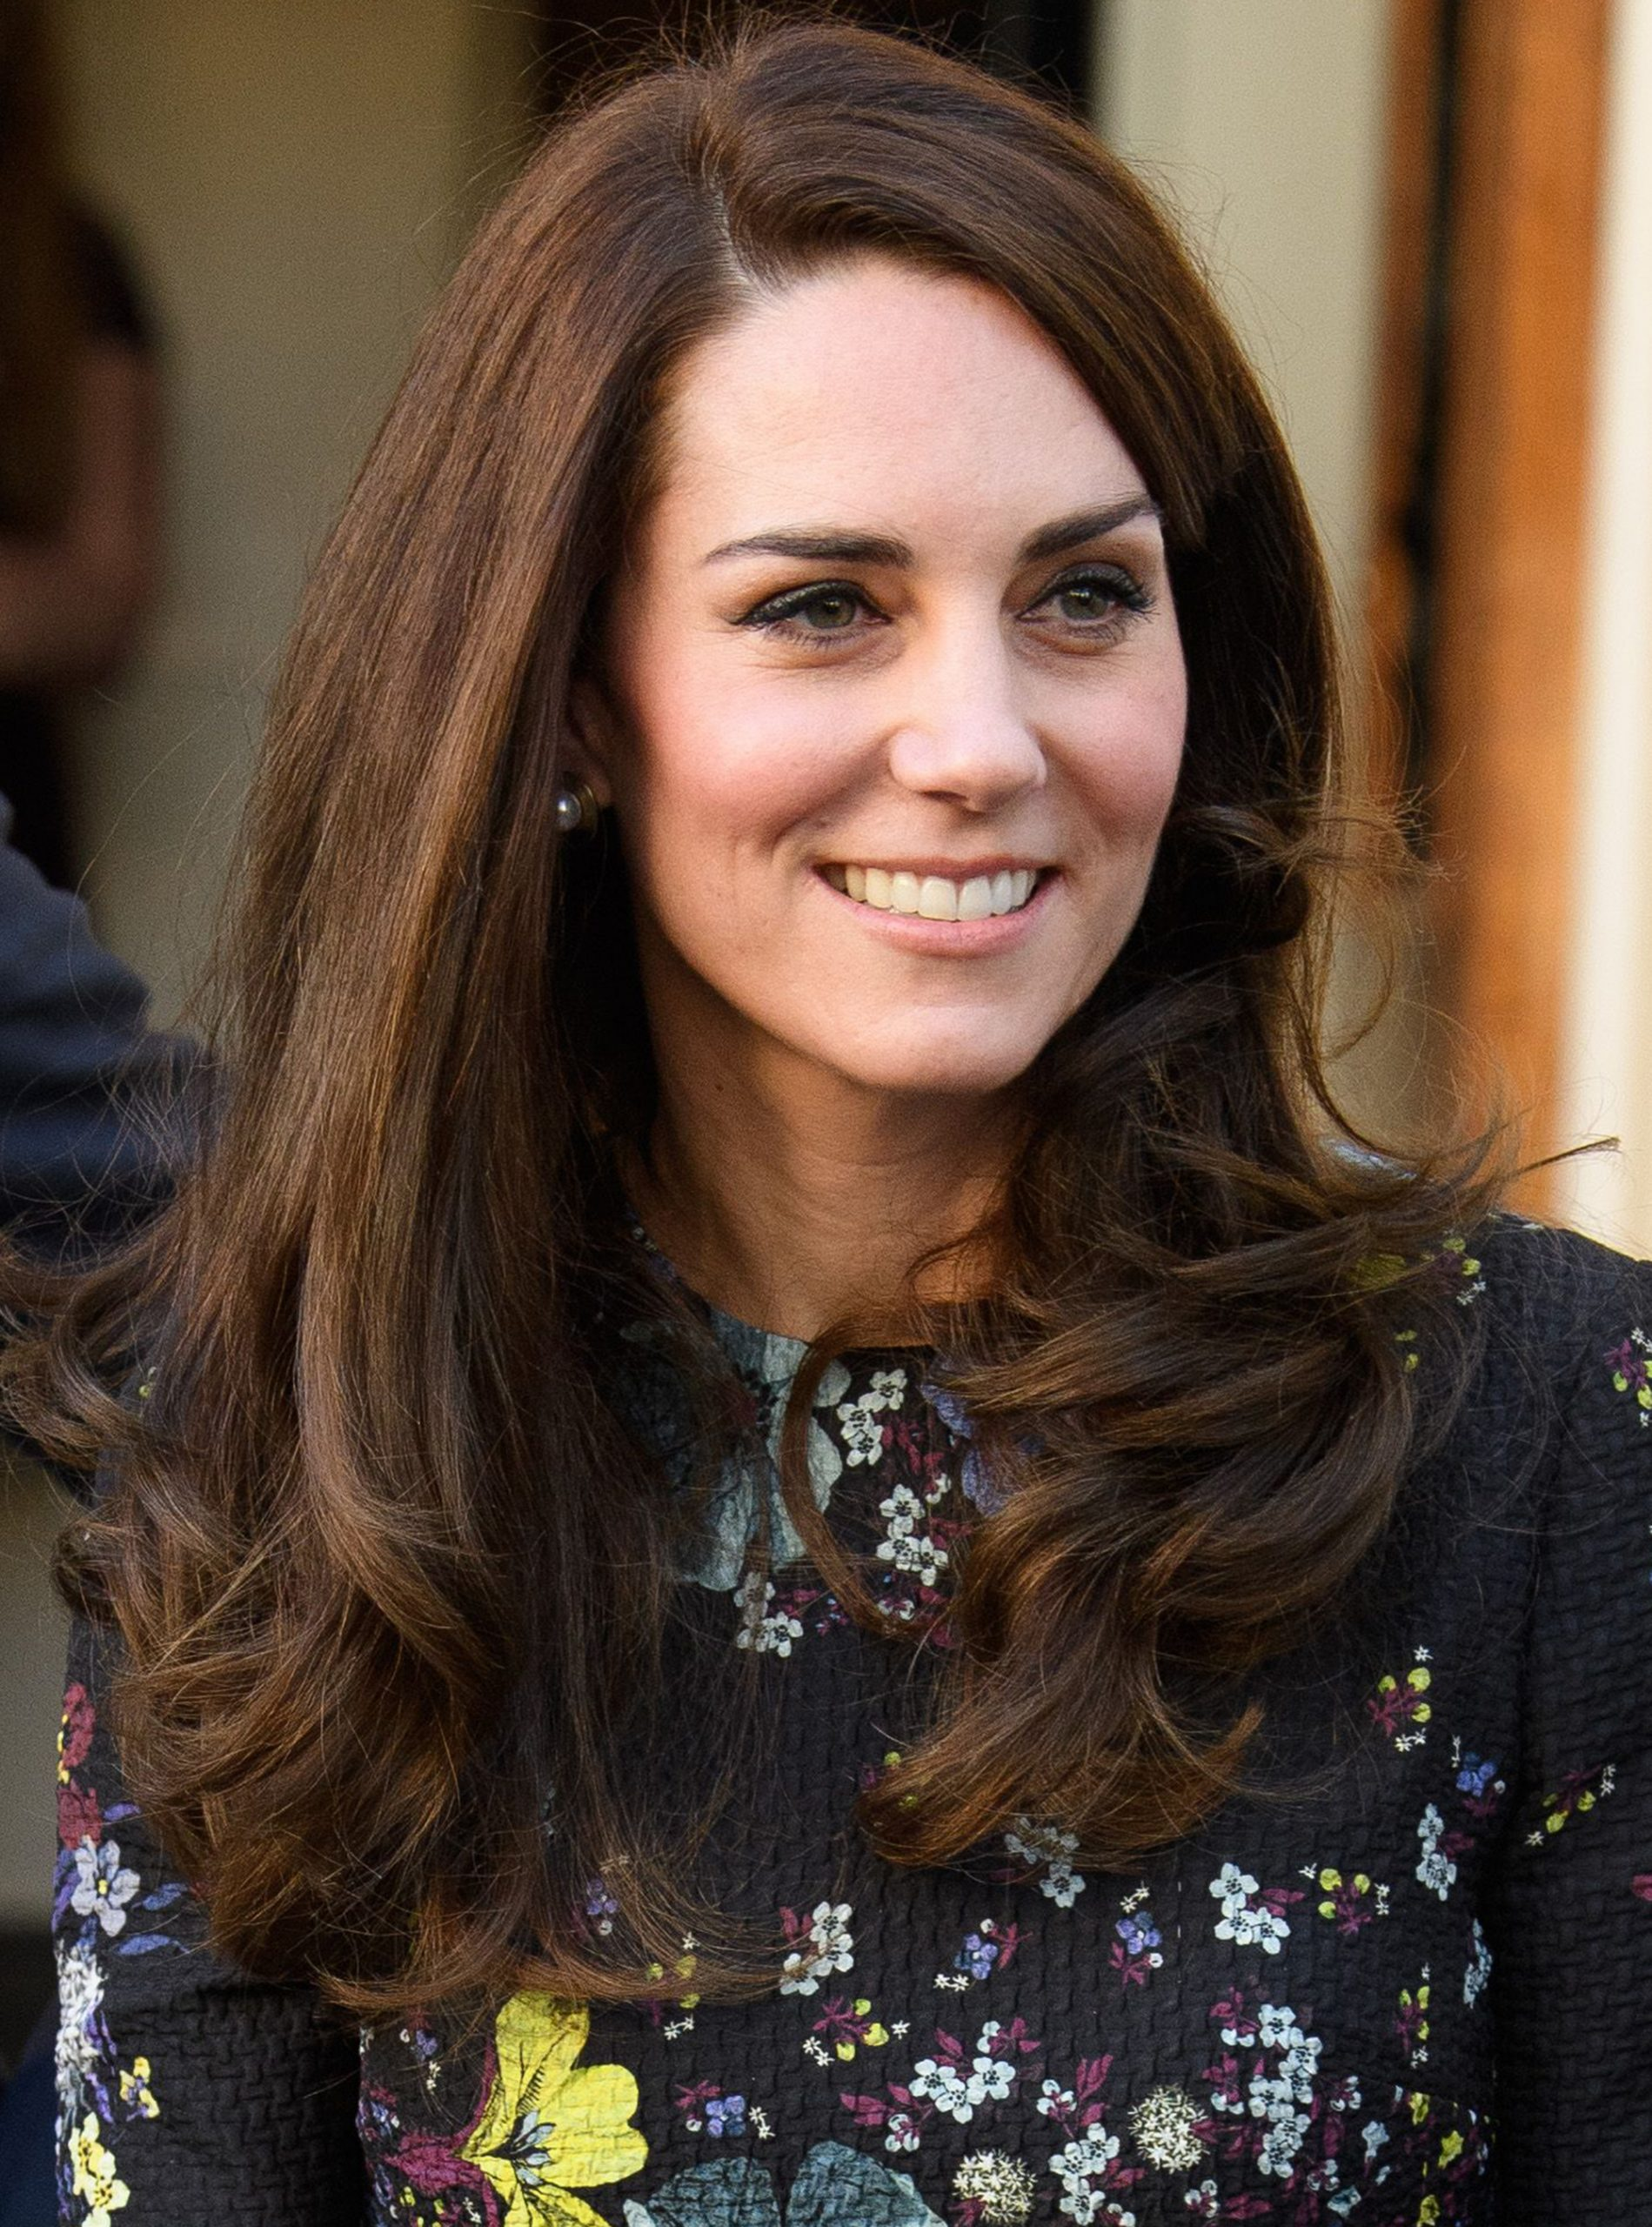 kate middleton s hair how she cares for it styles it and covers greys woman home kate middleton s hair how she cares